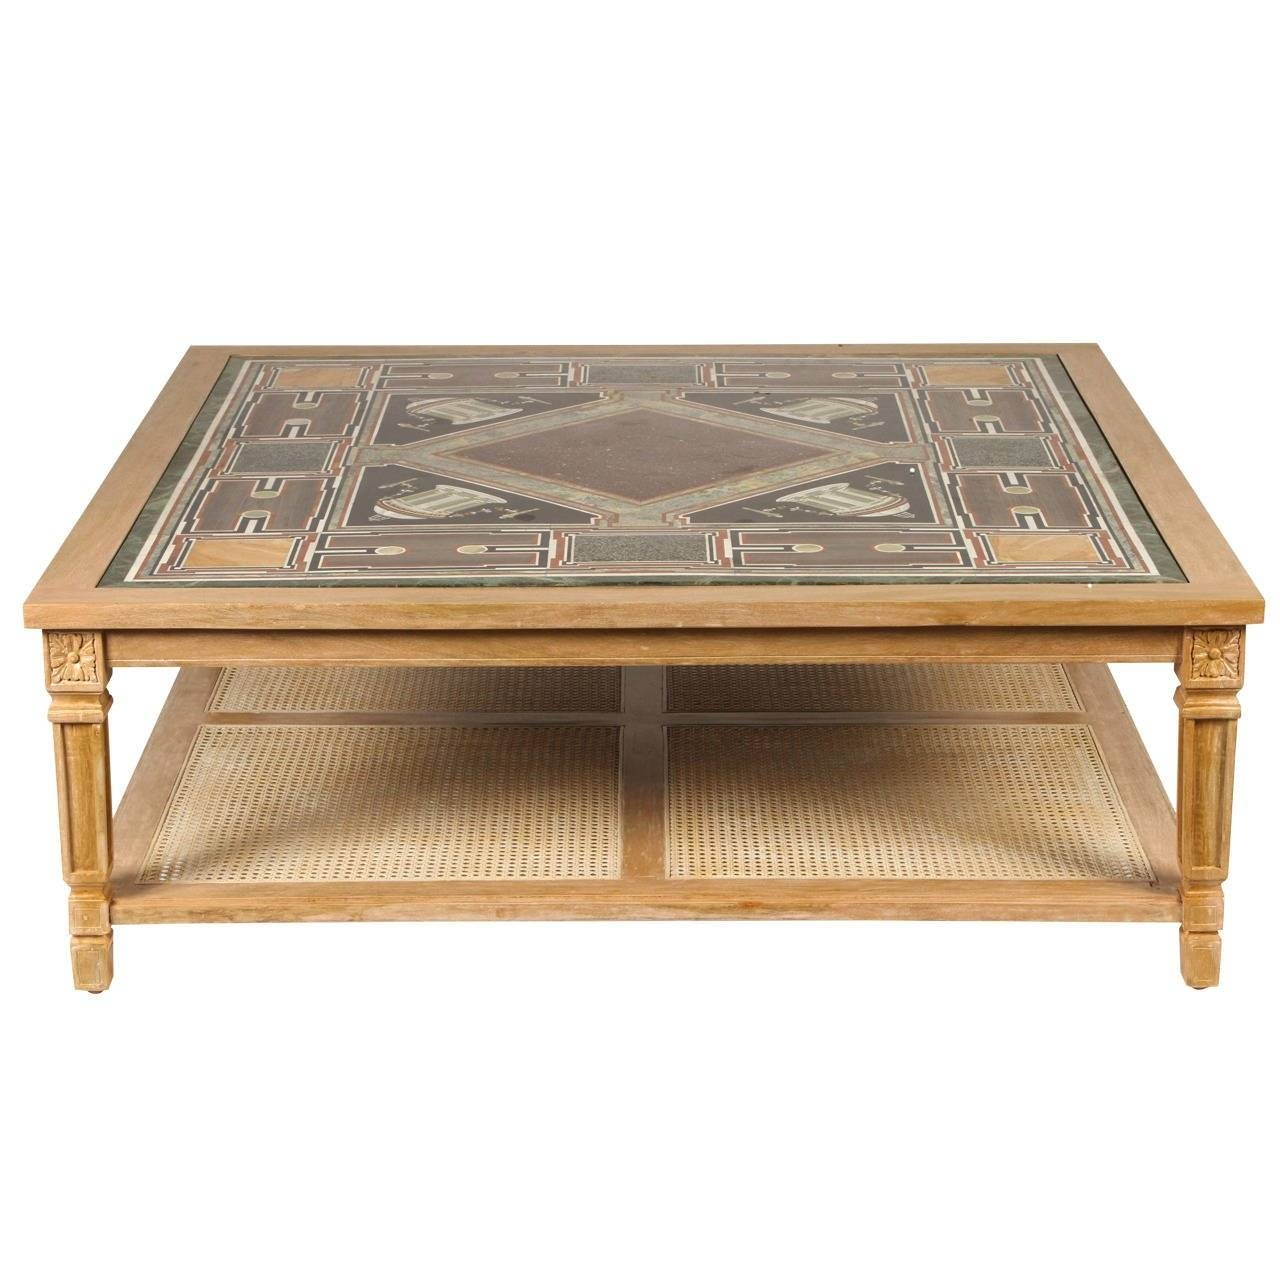 Cerused Mahogany Coffee Table With Inlaid Marble Top And Cane inside Mahogany Coffee Tables (Image 5 of 30)